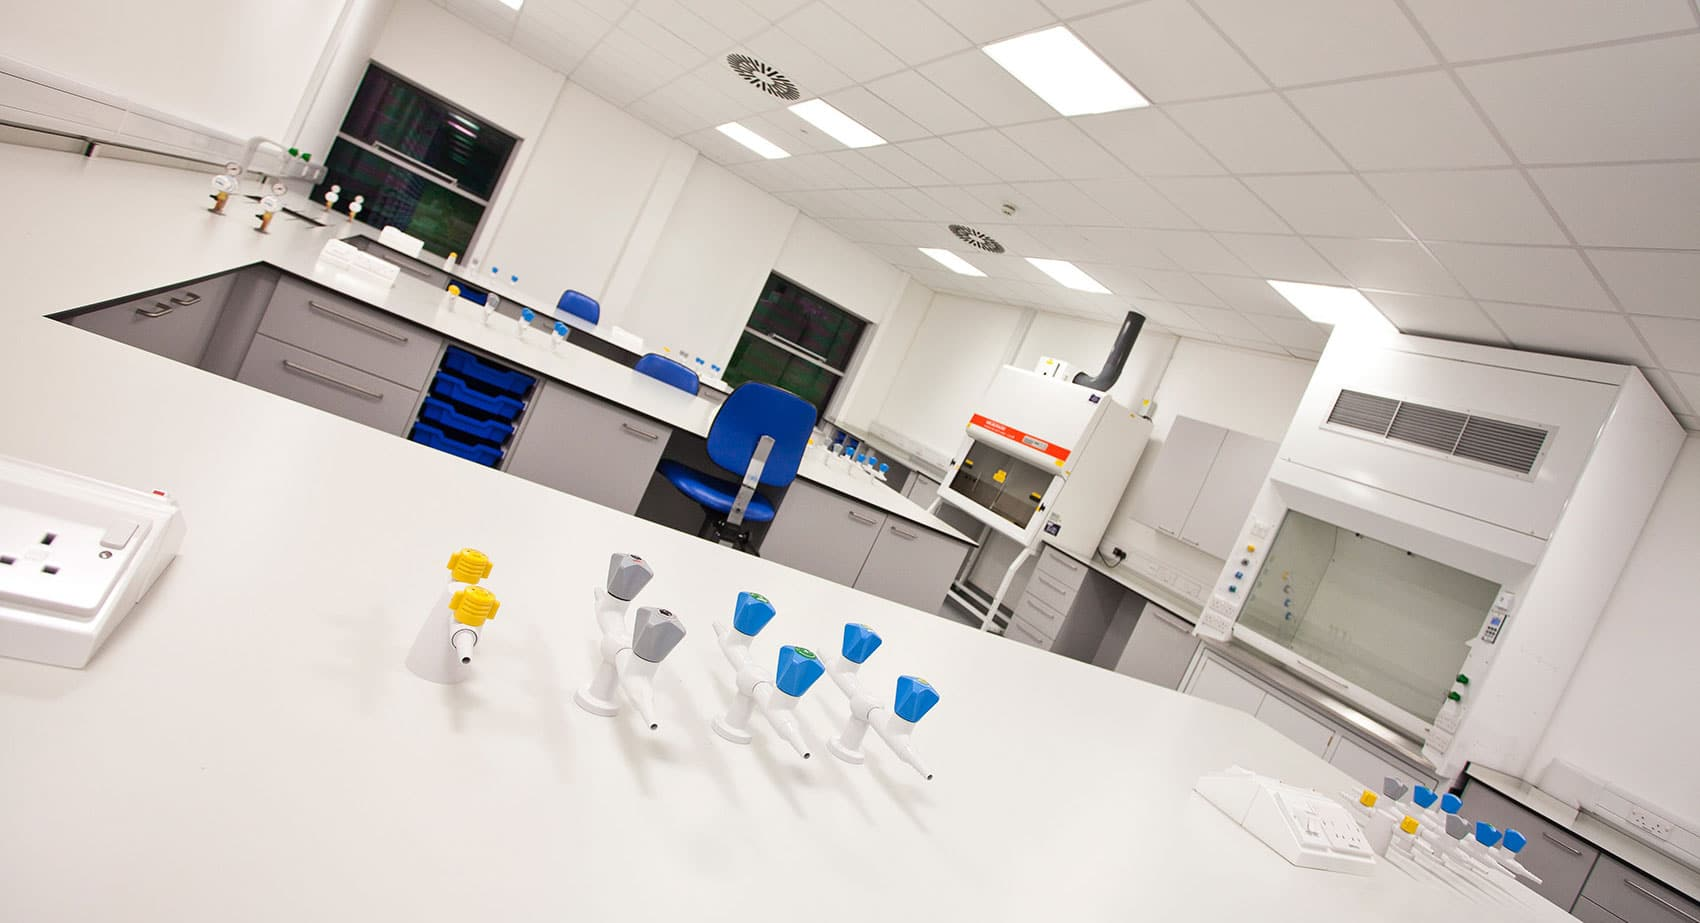 laboratory furniture design and manufacture in the uk by interfocus